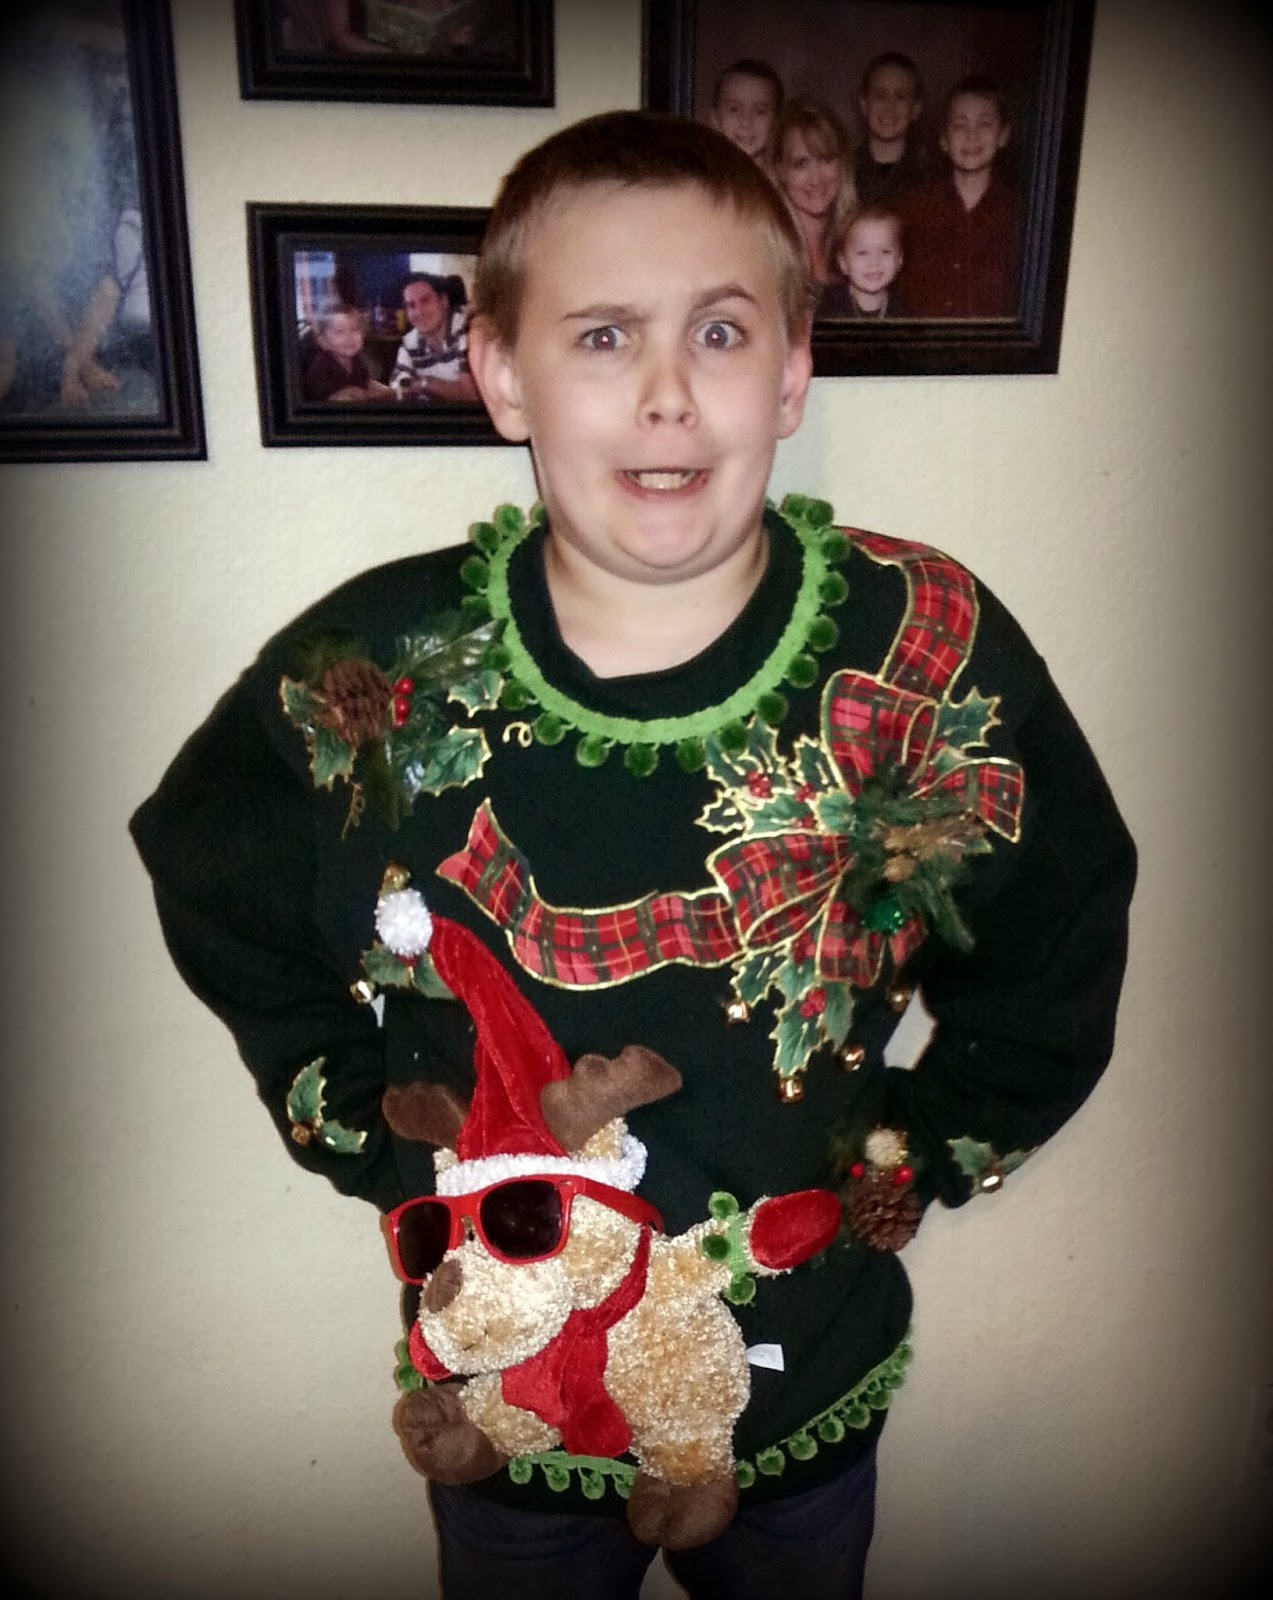 Ugly Sweater Contest | FBC Seguin Students |Ugliest Sweater Contest Ideas